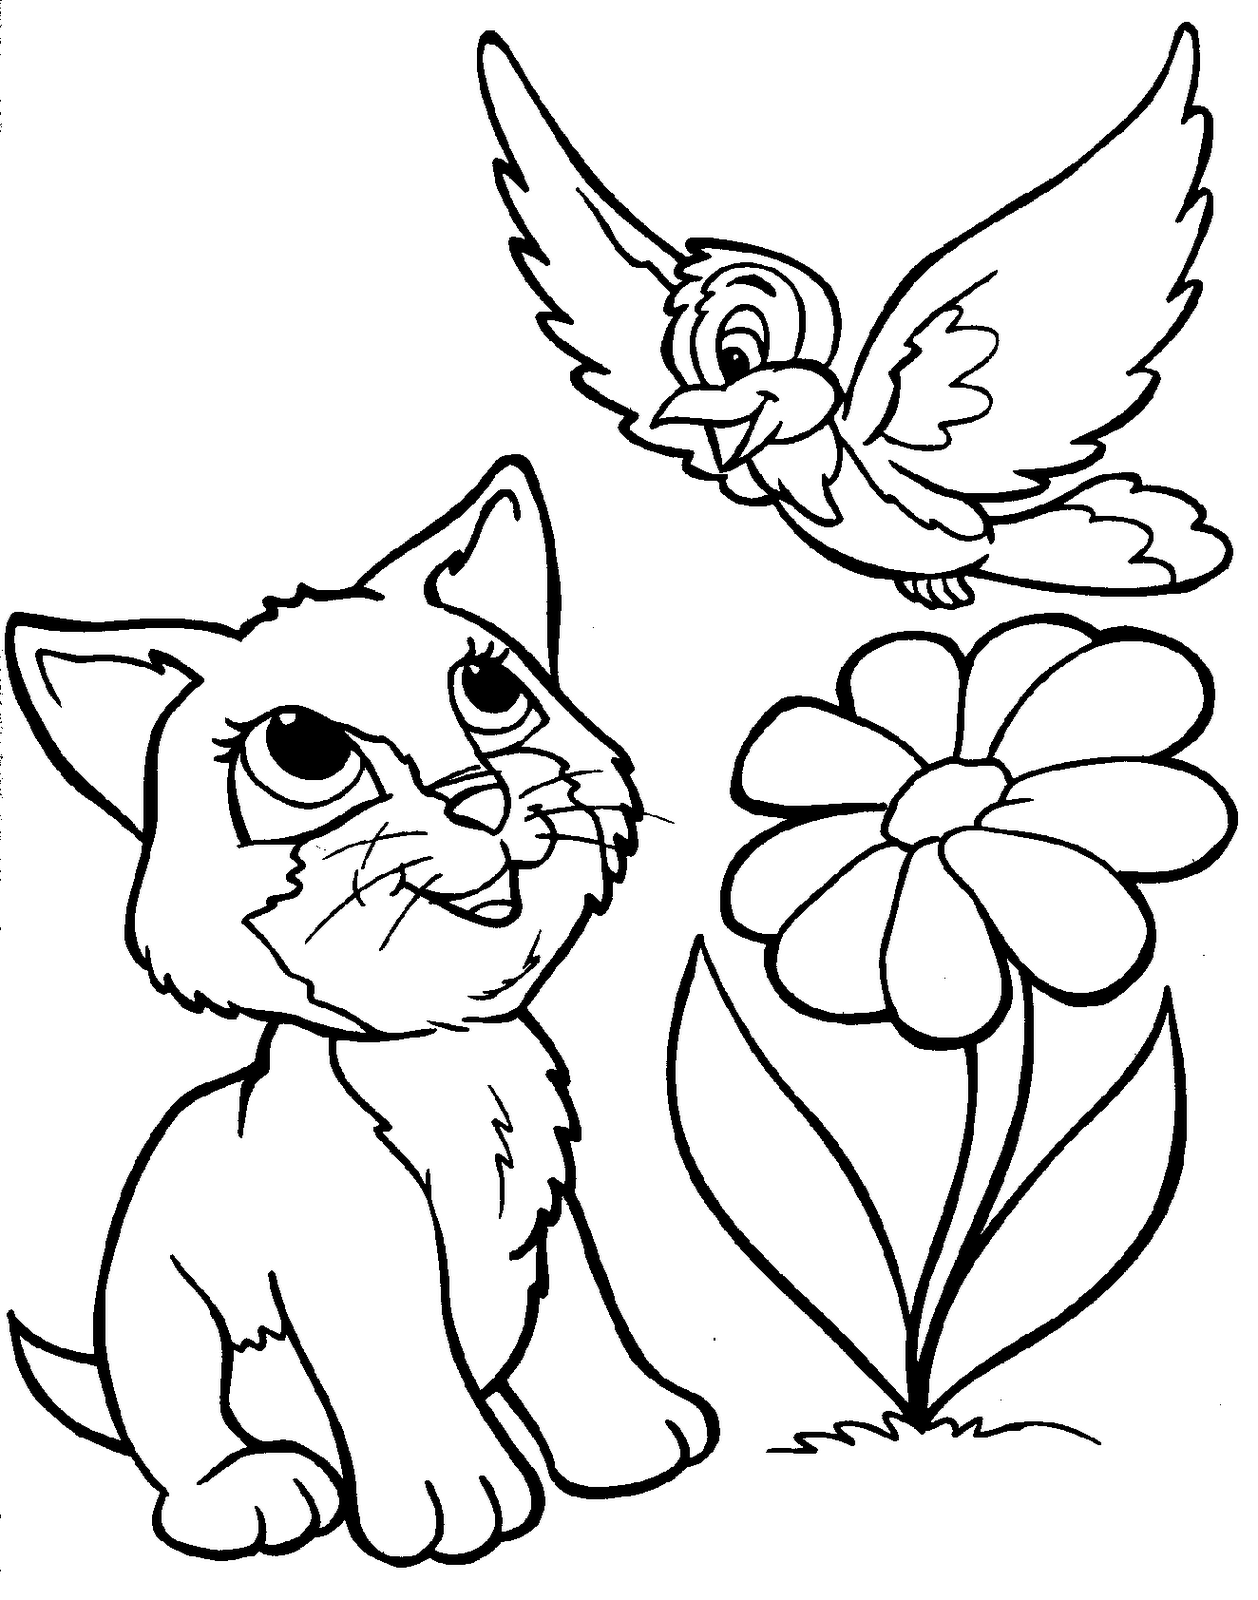 coloring pages disney animals 10 cute animals coloring pages gtgt disney coloring pages animals coloring disney pages